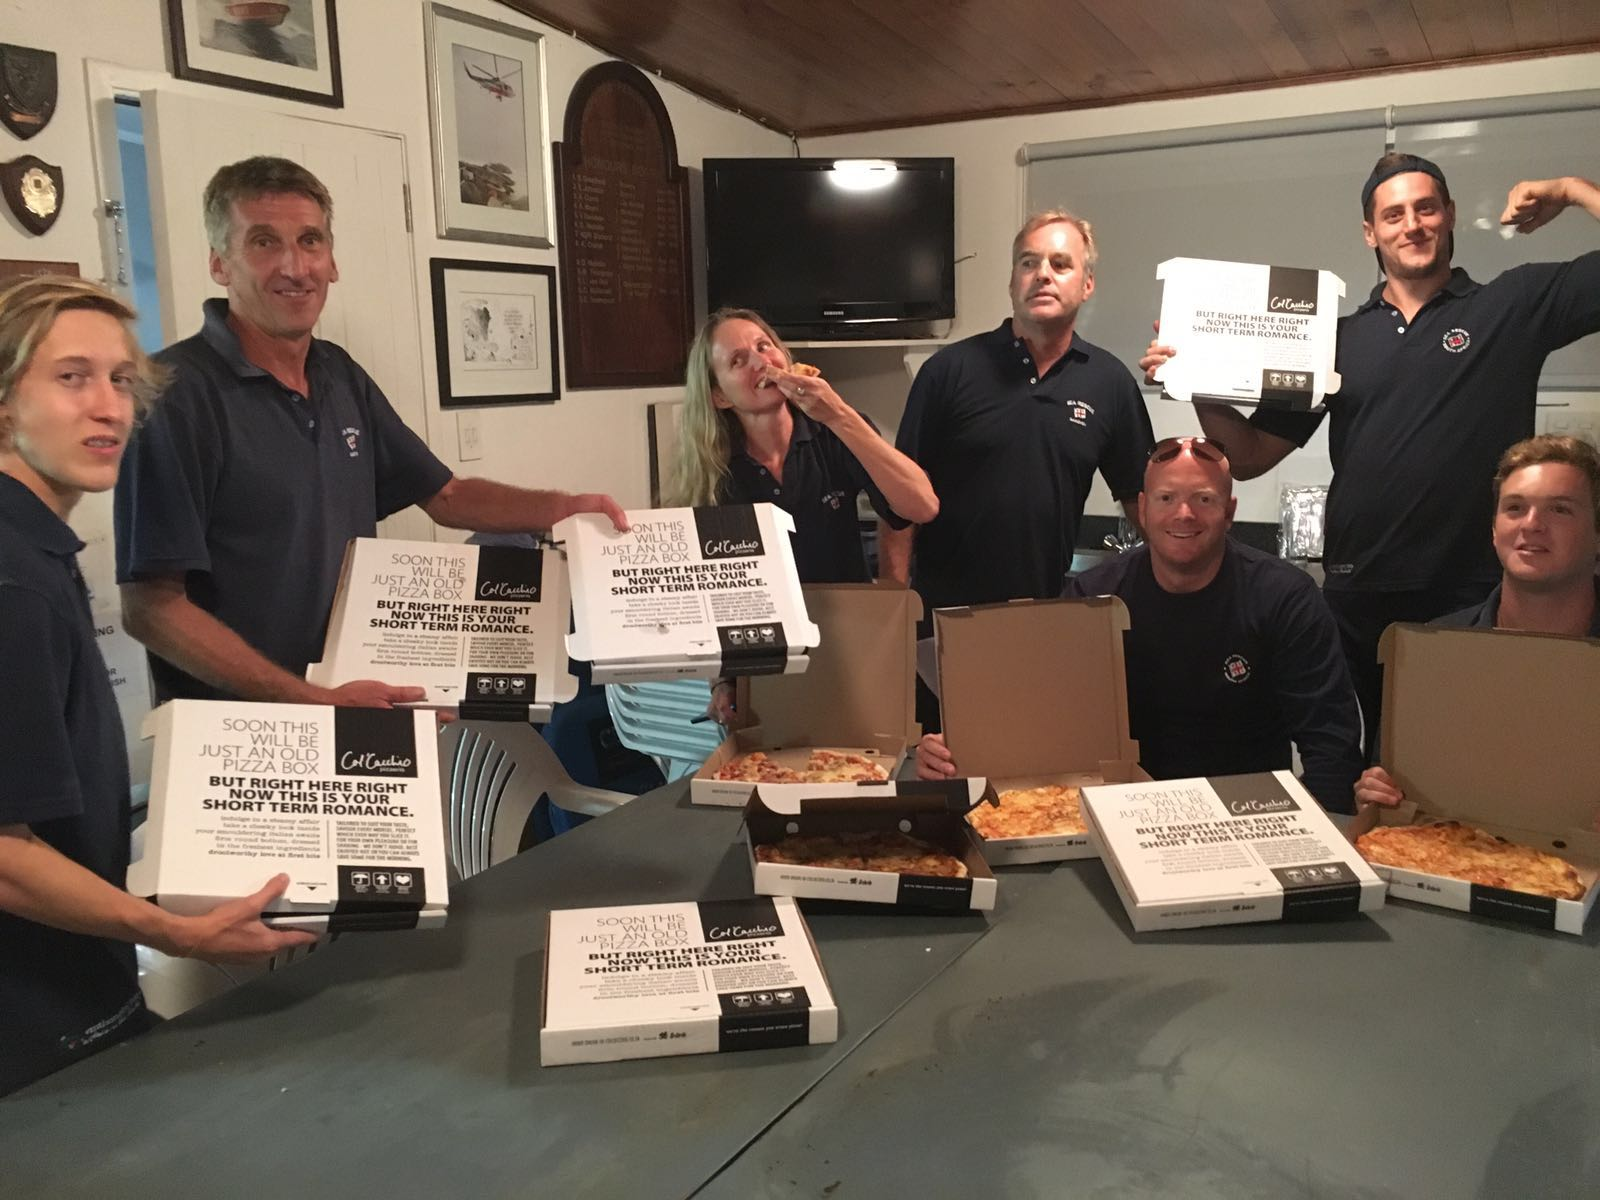 Thanks to Cal Cacchios for supplying free pizzas to the Bakoven crew who worked so hard during Moonstruck!